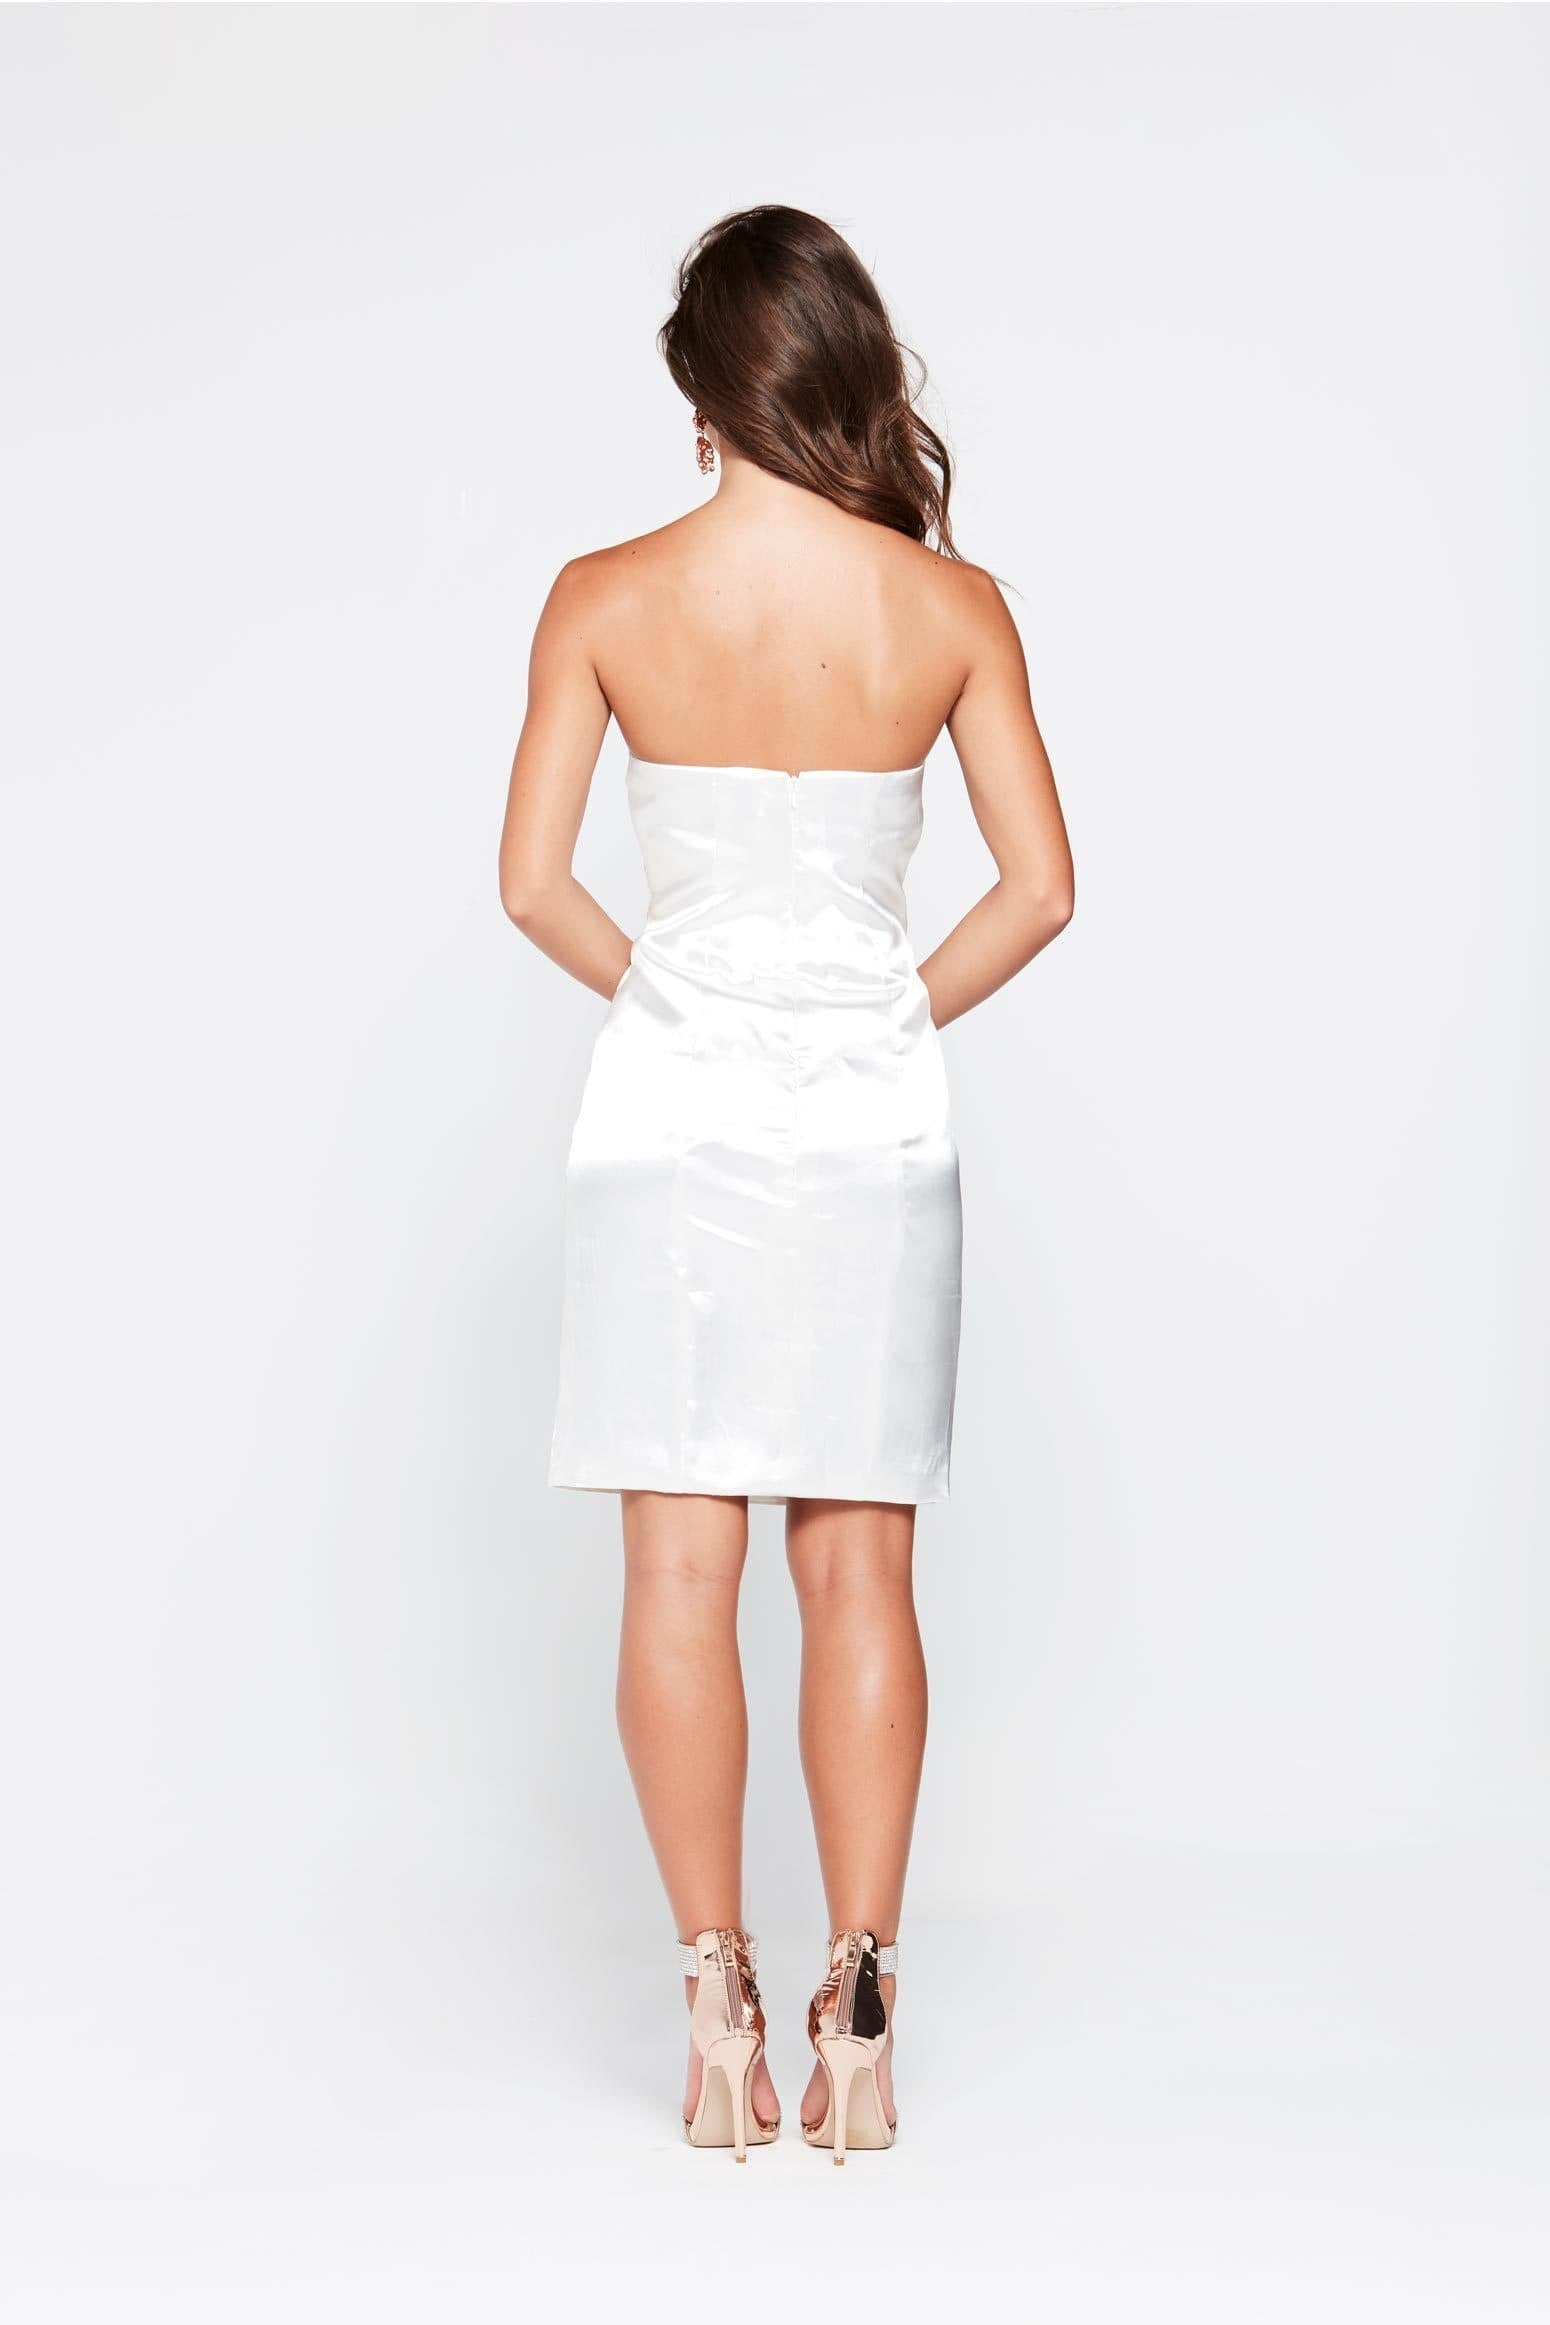 Aino Mini Cocktail Dress - White Satin Strapless Dress A Line Skirt